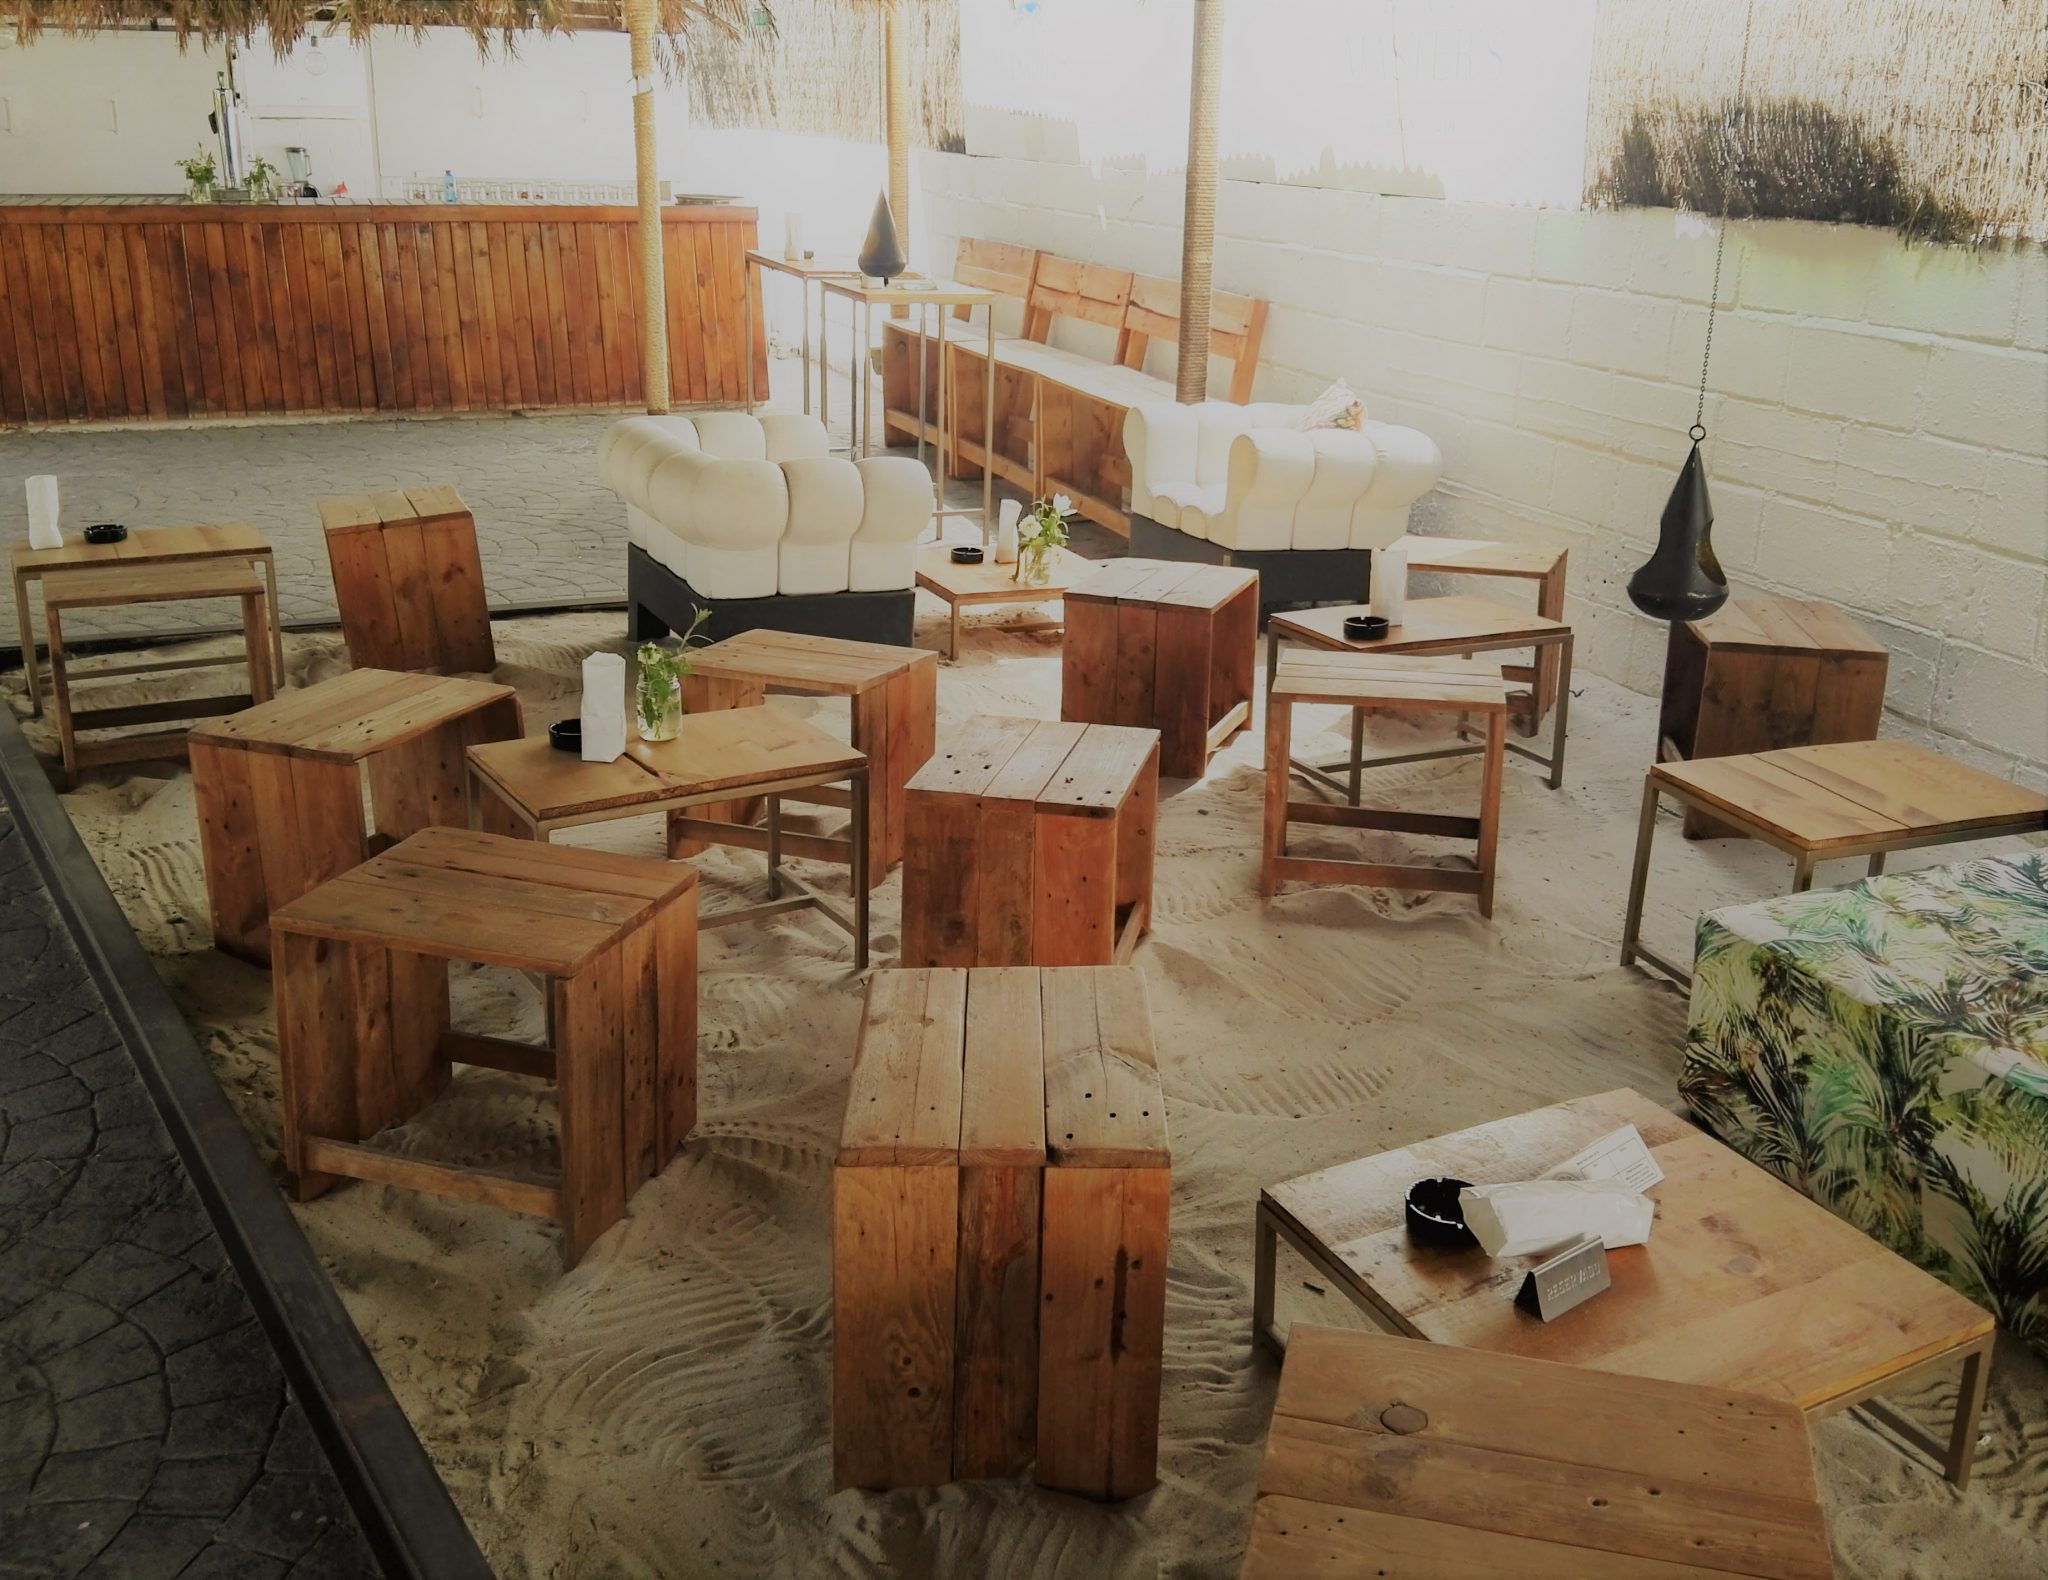 Mobiliario Con Palets Great Latest Chill Outs Y Muebles Con Palets - Mobiliario-con-palets